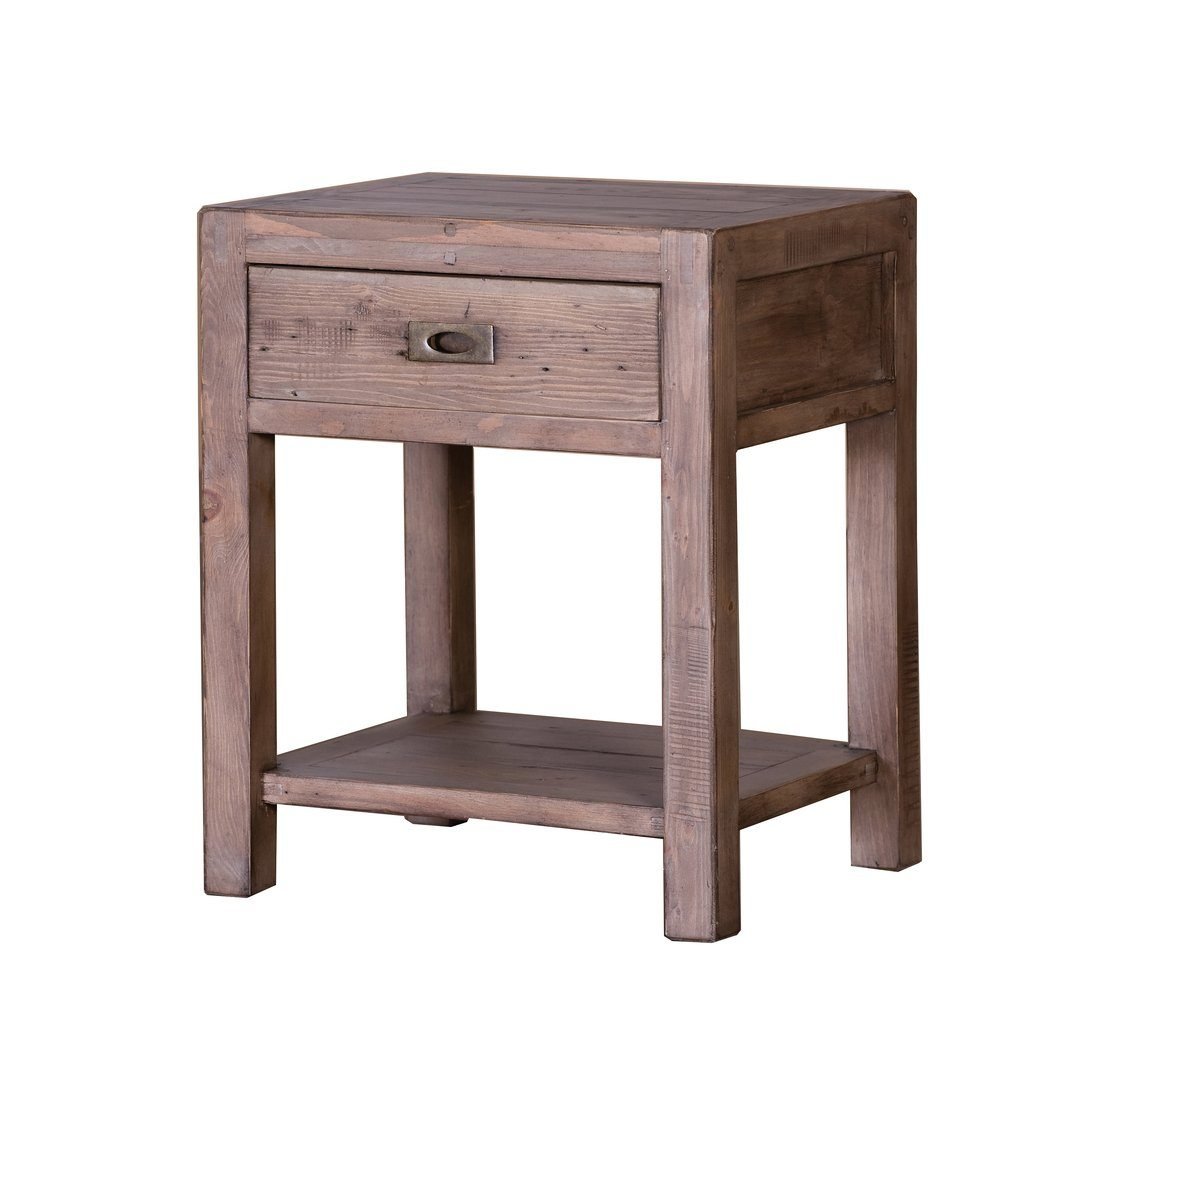 Small End Table - Sundried Ash Finish | Calgary's Furniture Store